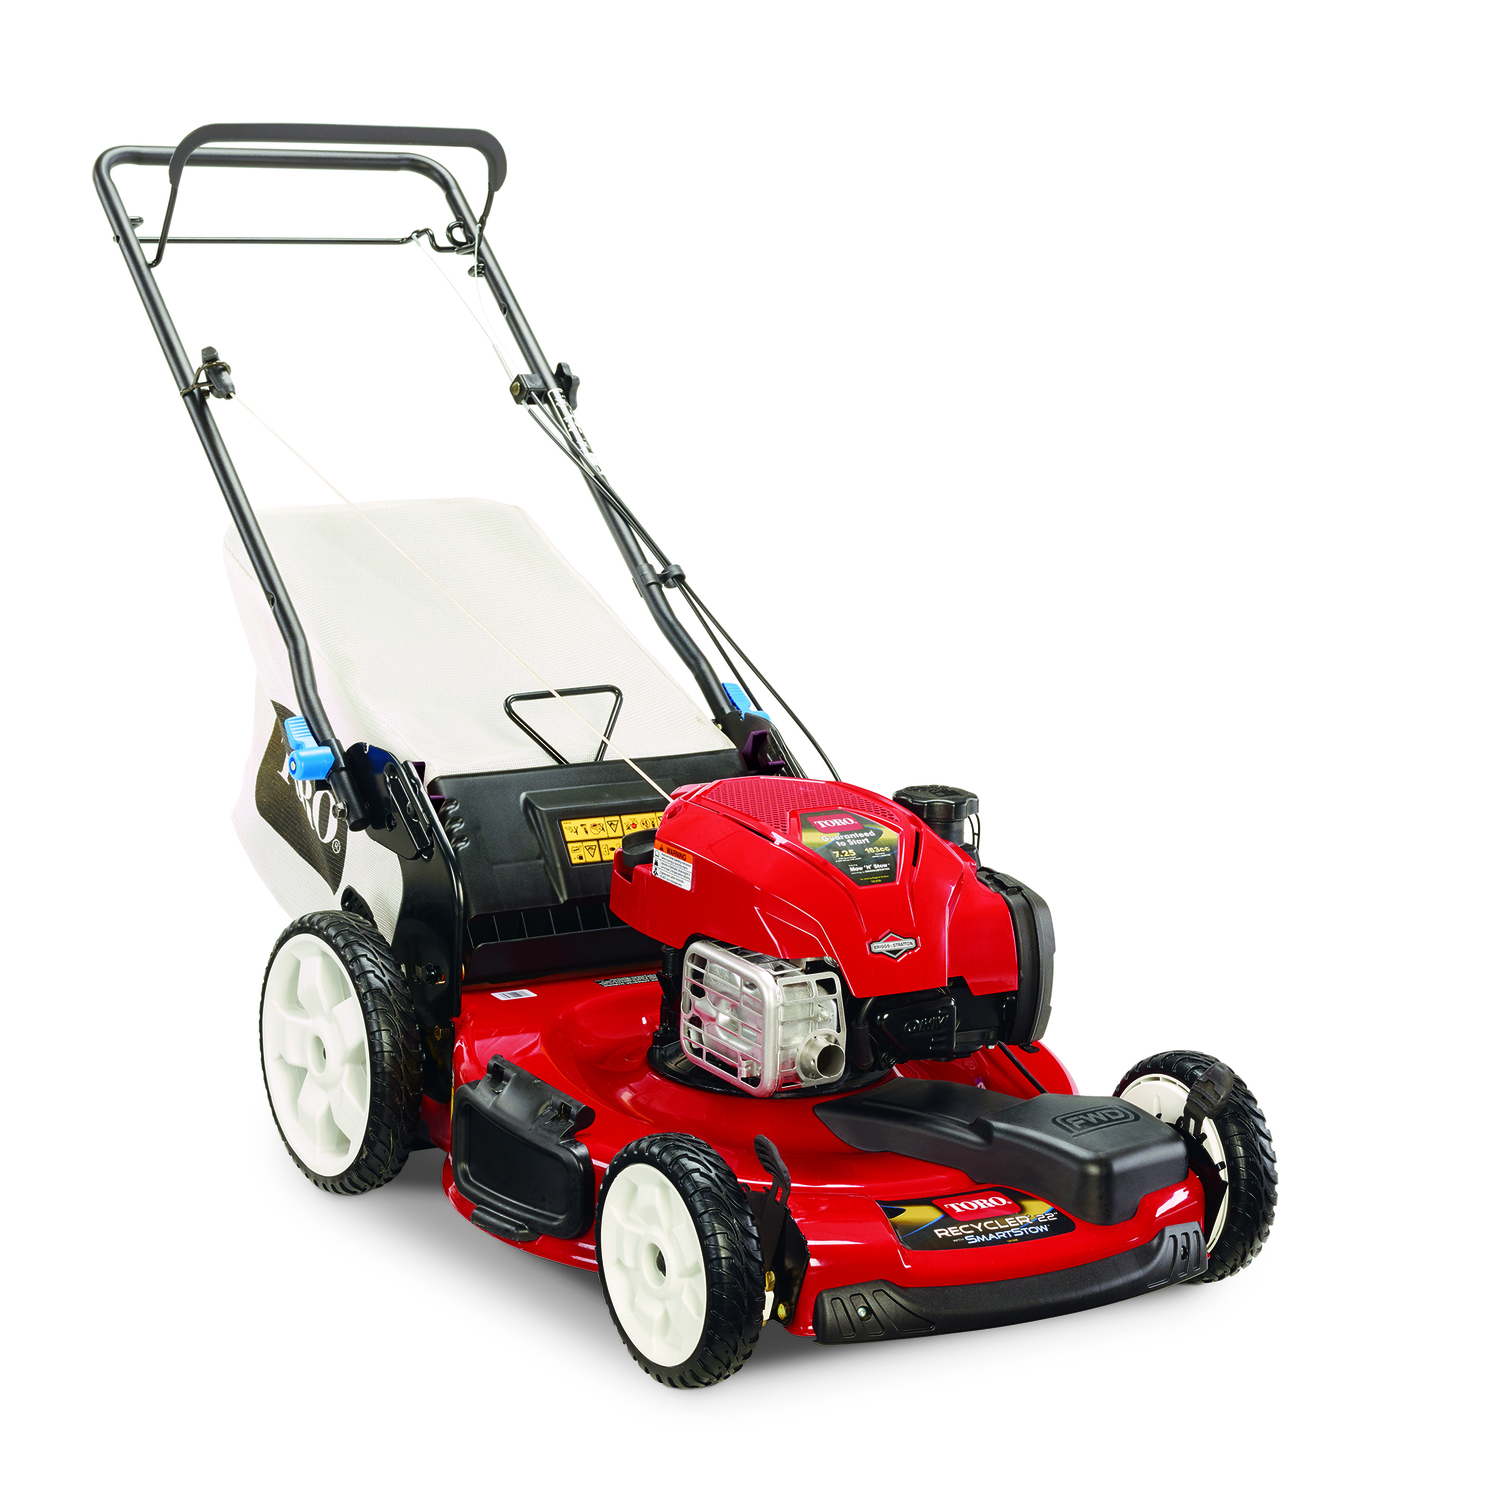 Toro Smart Stow 22 in. 163 cc Self-Propelled Lawn Mower